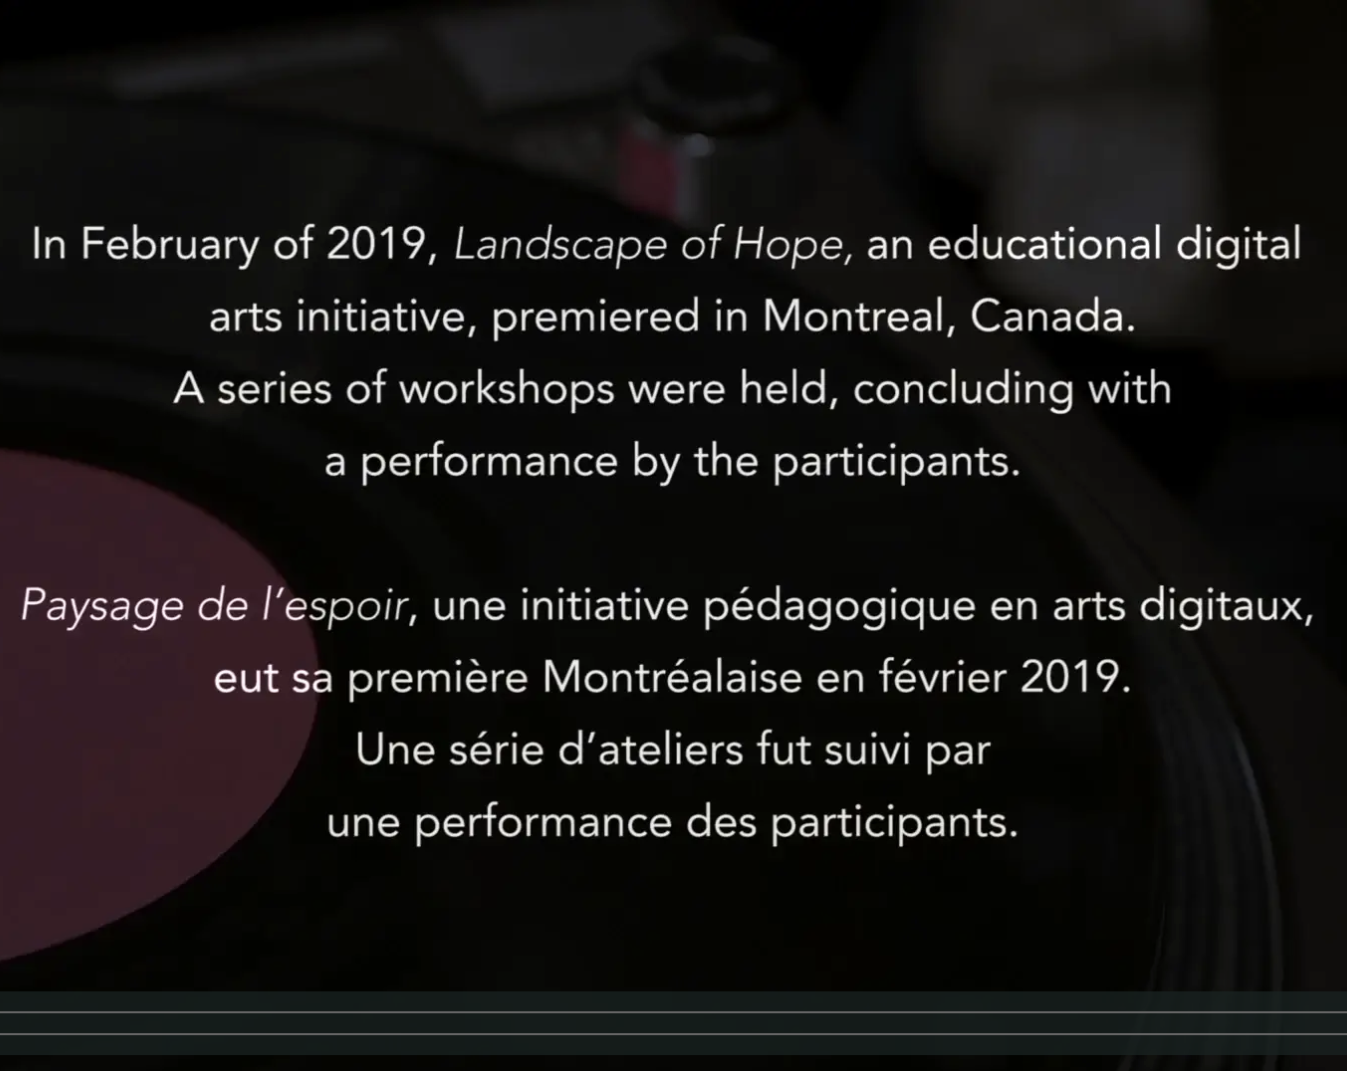 Explainer Video for Landscape of Hope, an Educational Digital Arts Initiative